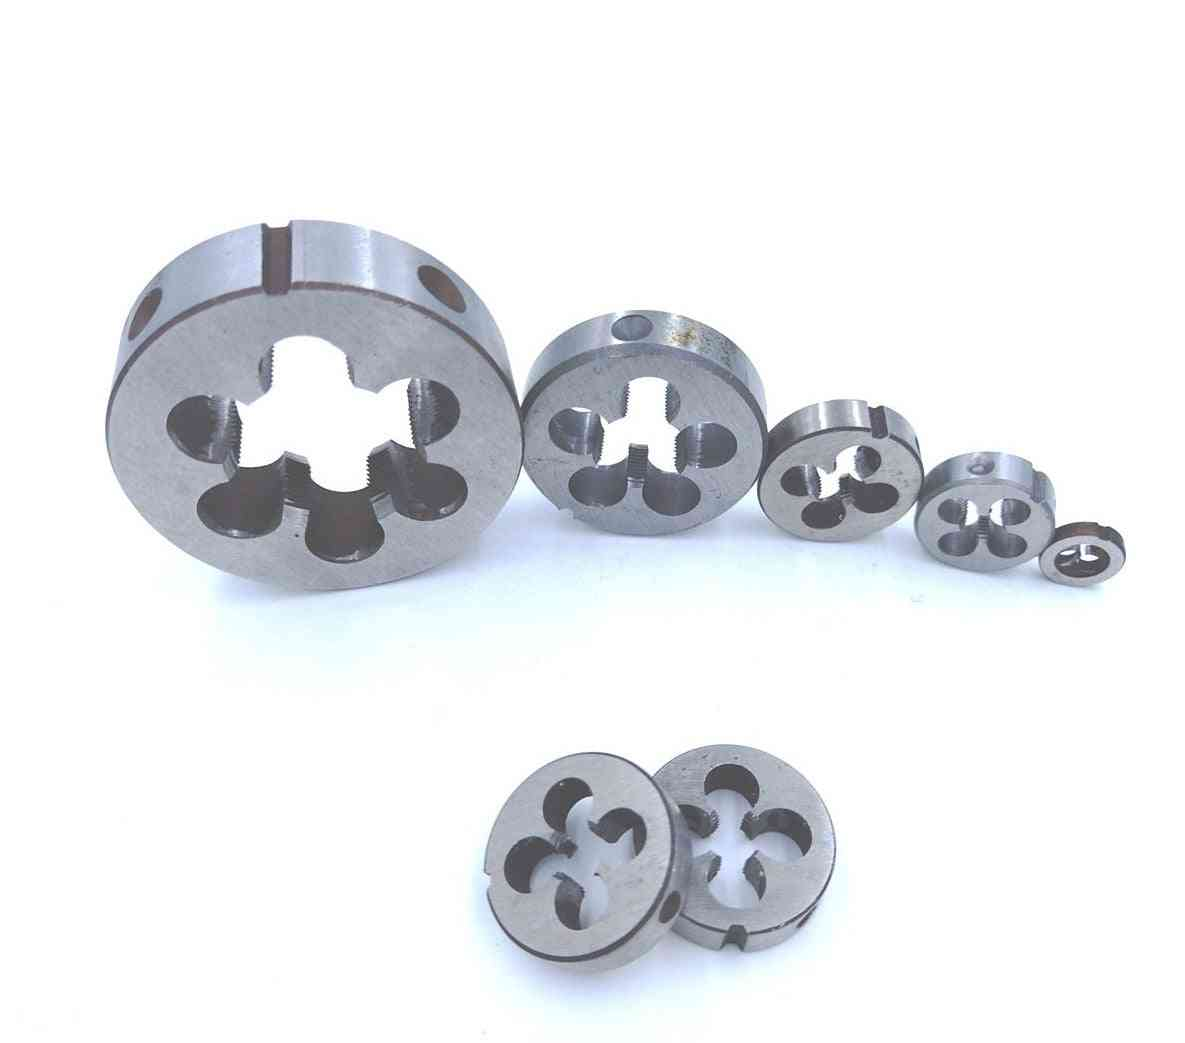 Metric Die Right Hand Pitch Threading Tool